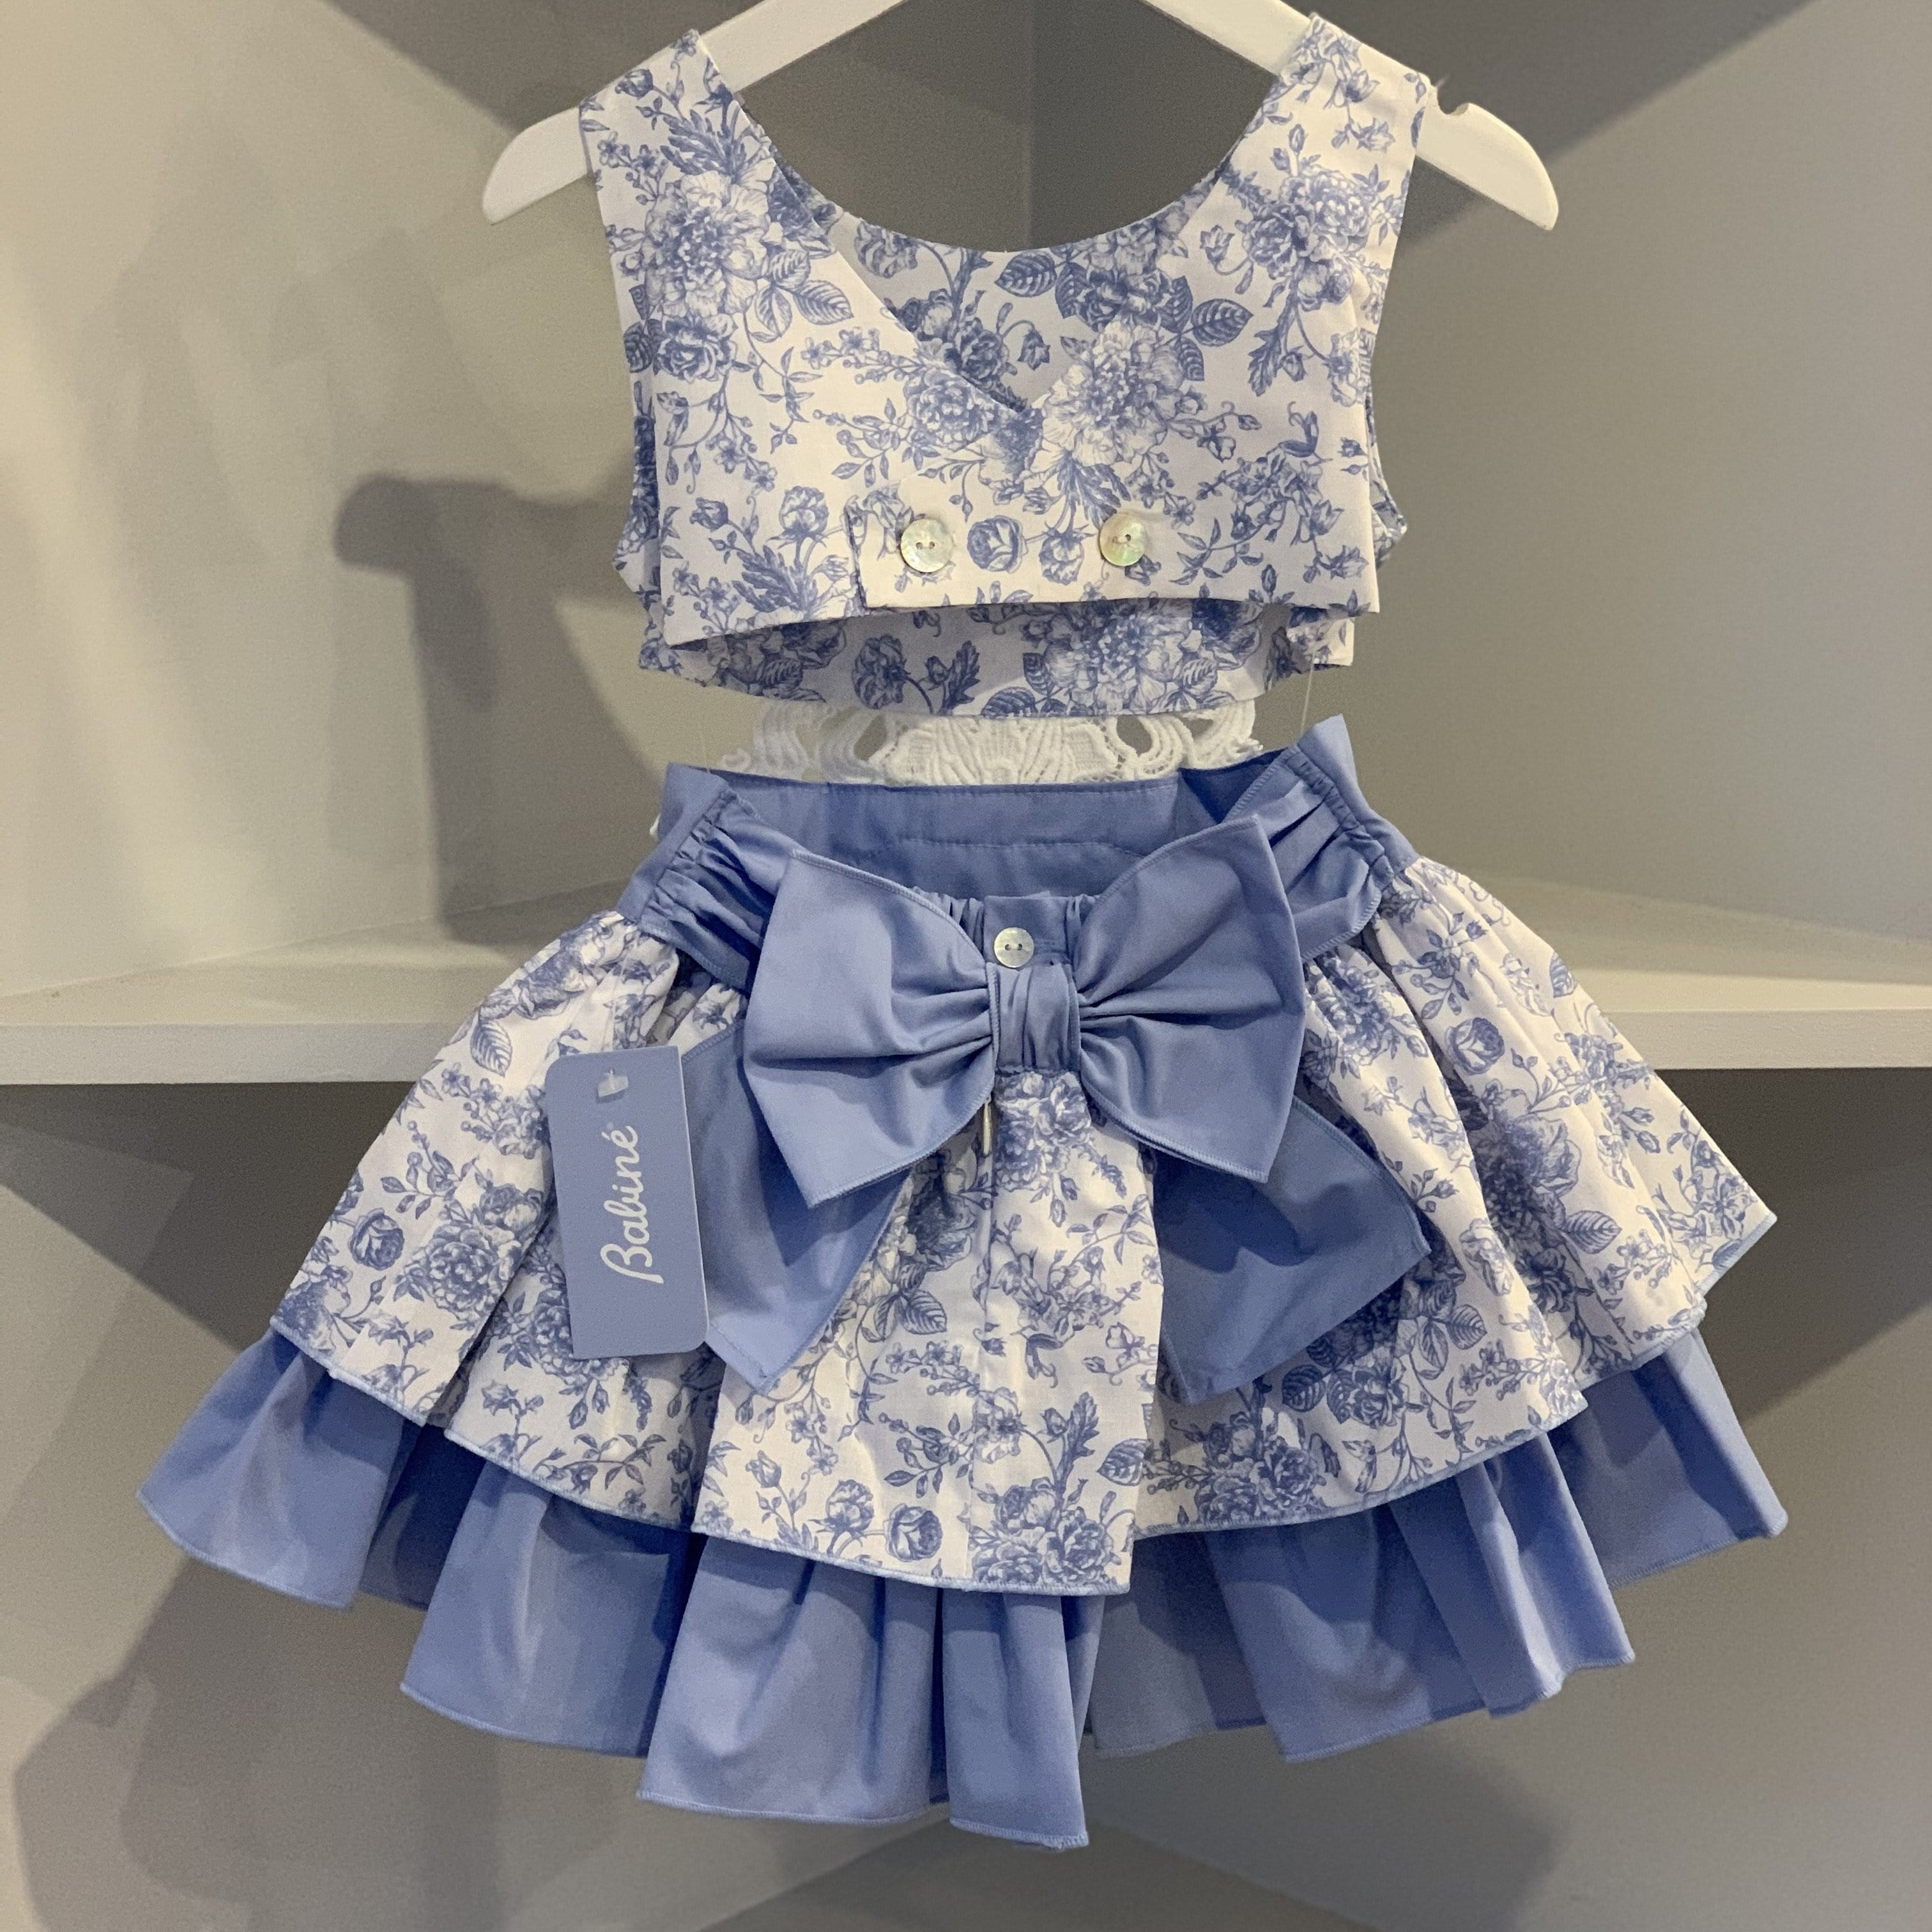 BABINE EXCLUSIVE PORCELAIN CUT OUT BLUE DRESS